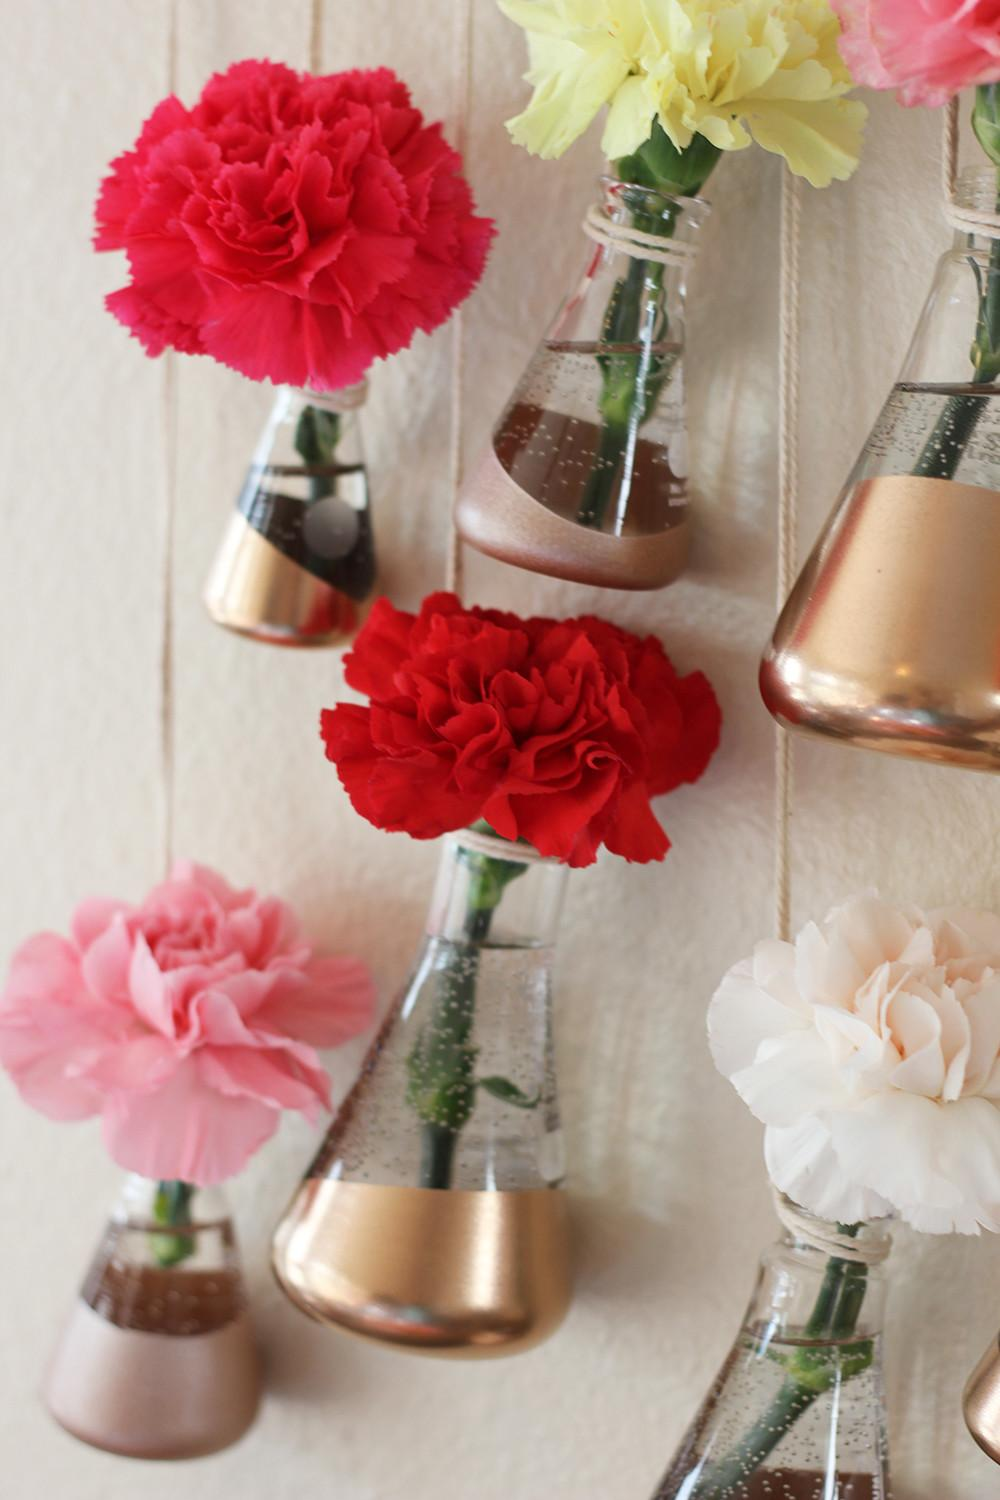 Diy Copper Hanging Bud Vases Homemadebanana